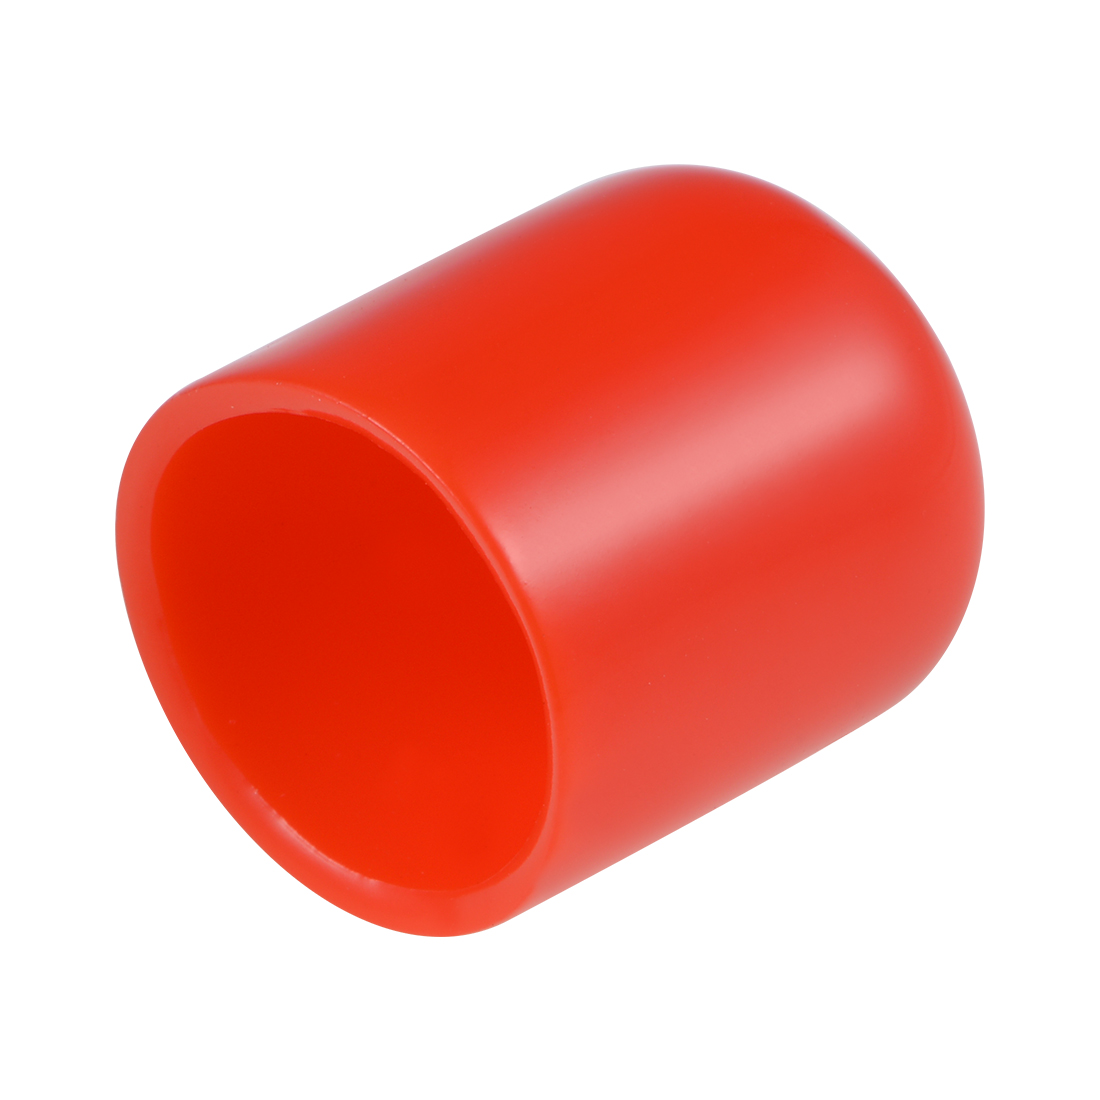 Screw Thread Protectors, 18mm ID 25mm Length Round End Cap Cover Red 20pcs